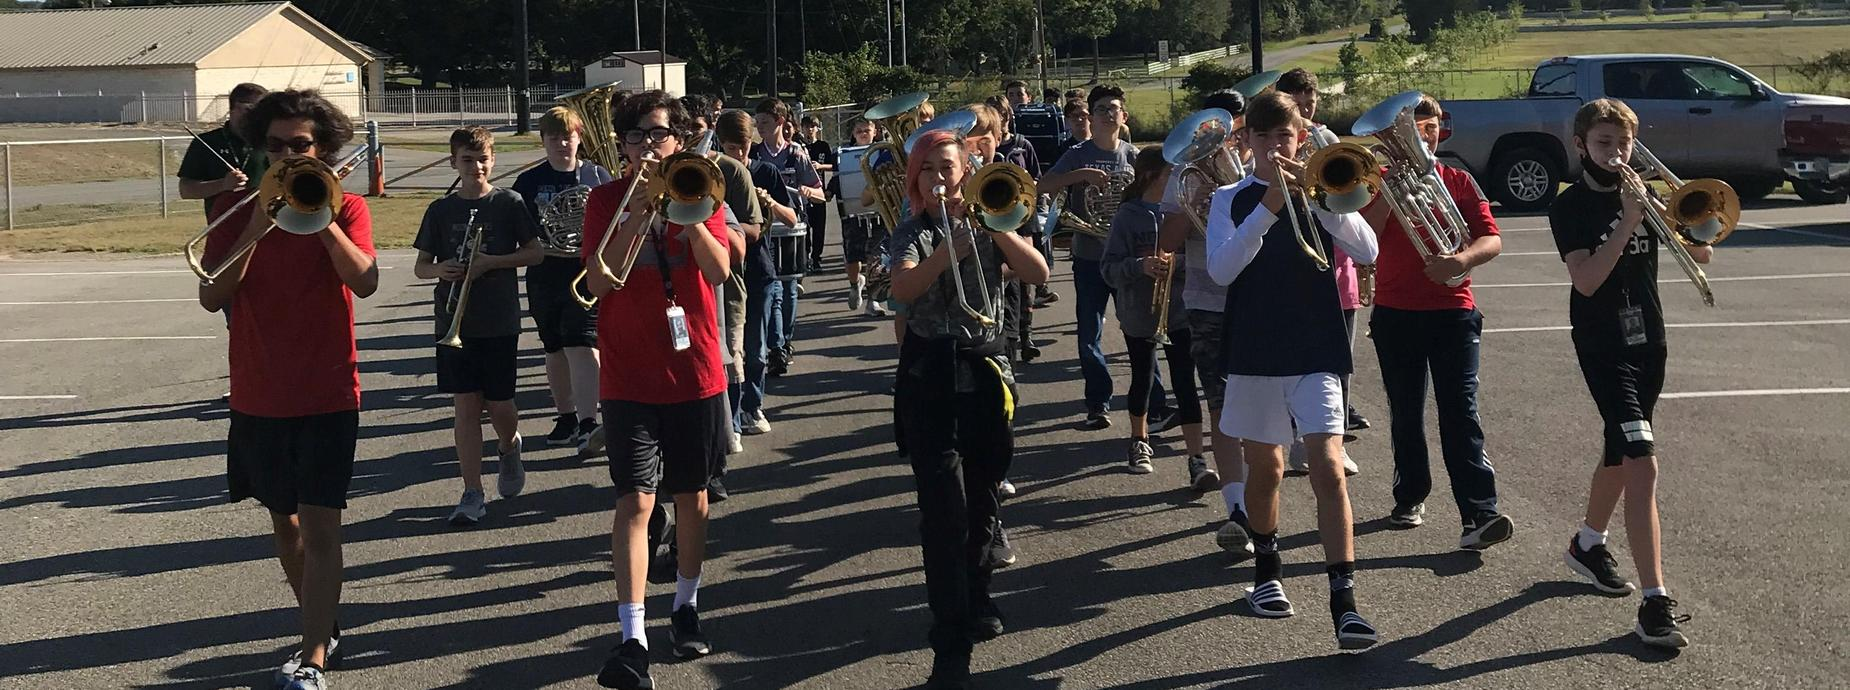 band parade practice